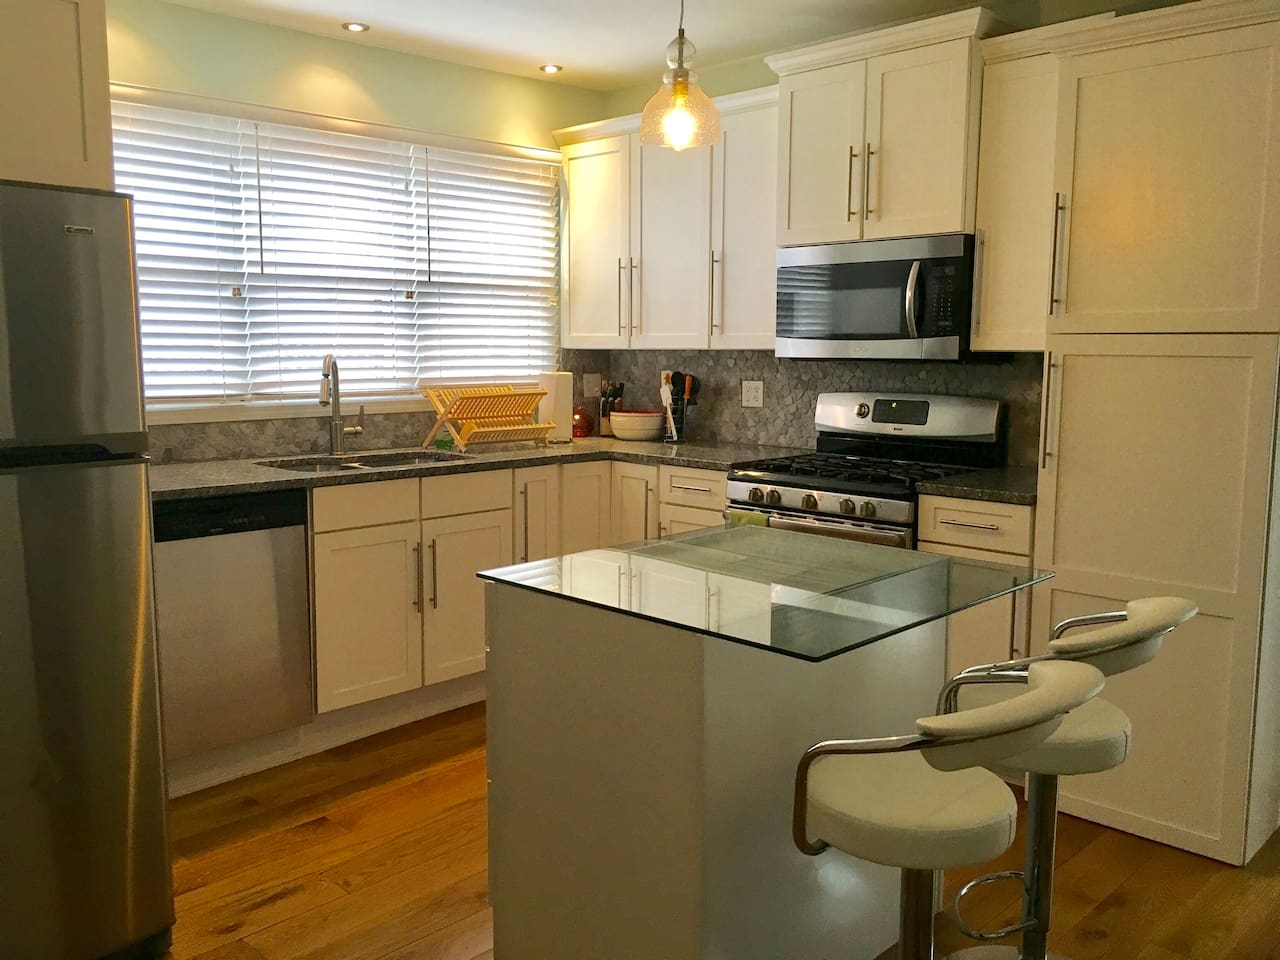 Large bright kitchen. Gas range. Fully equipped. Island with seating.